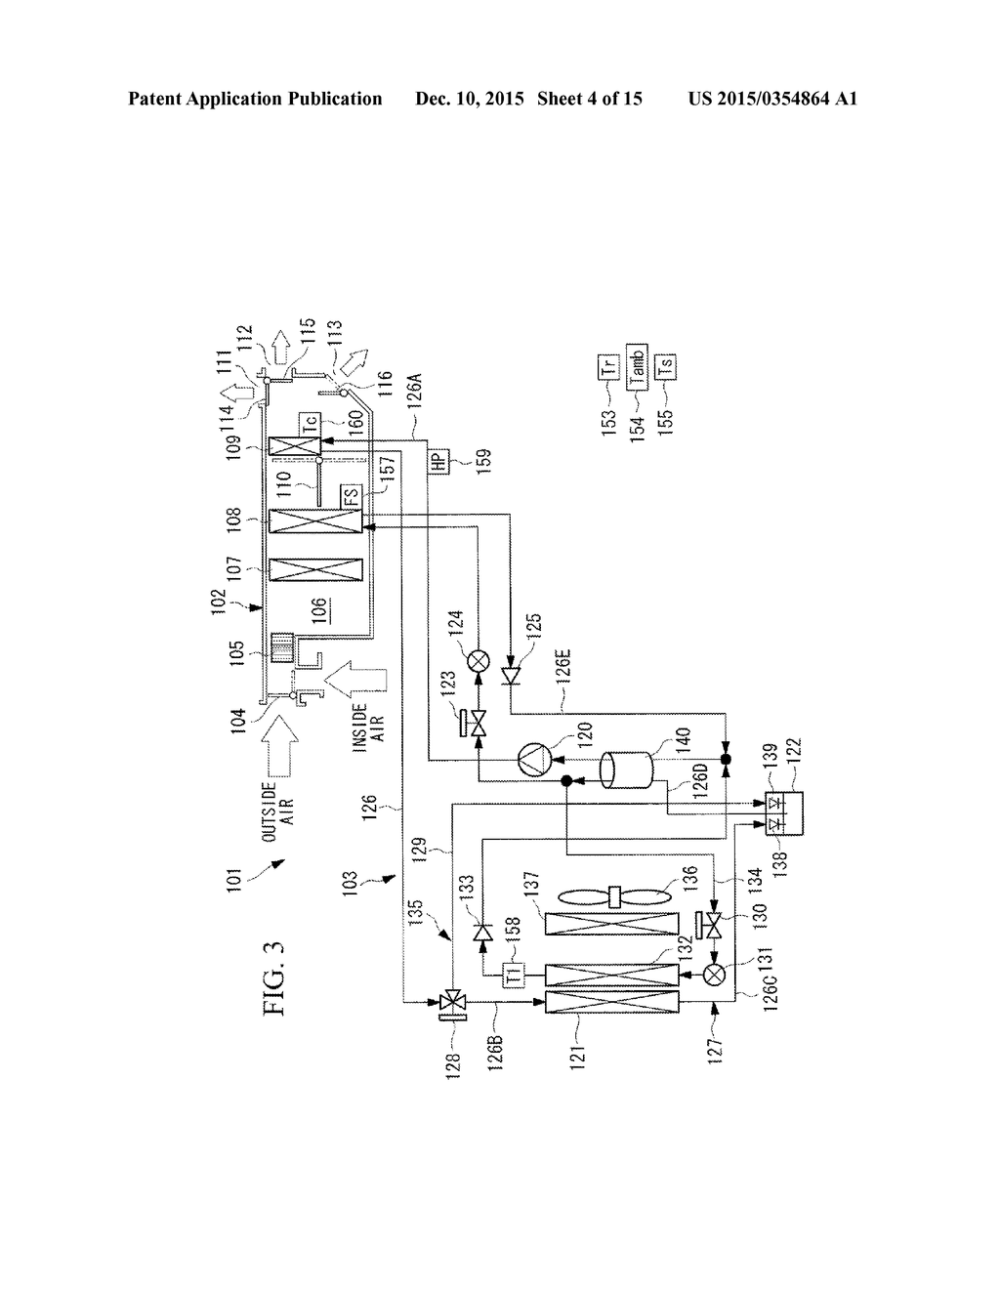 medium resolution of heat pump automotive air conditioner and defrosting method of the heat pump automotive air conditioner diagram schematic and image 05